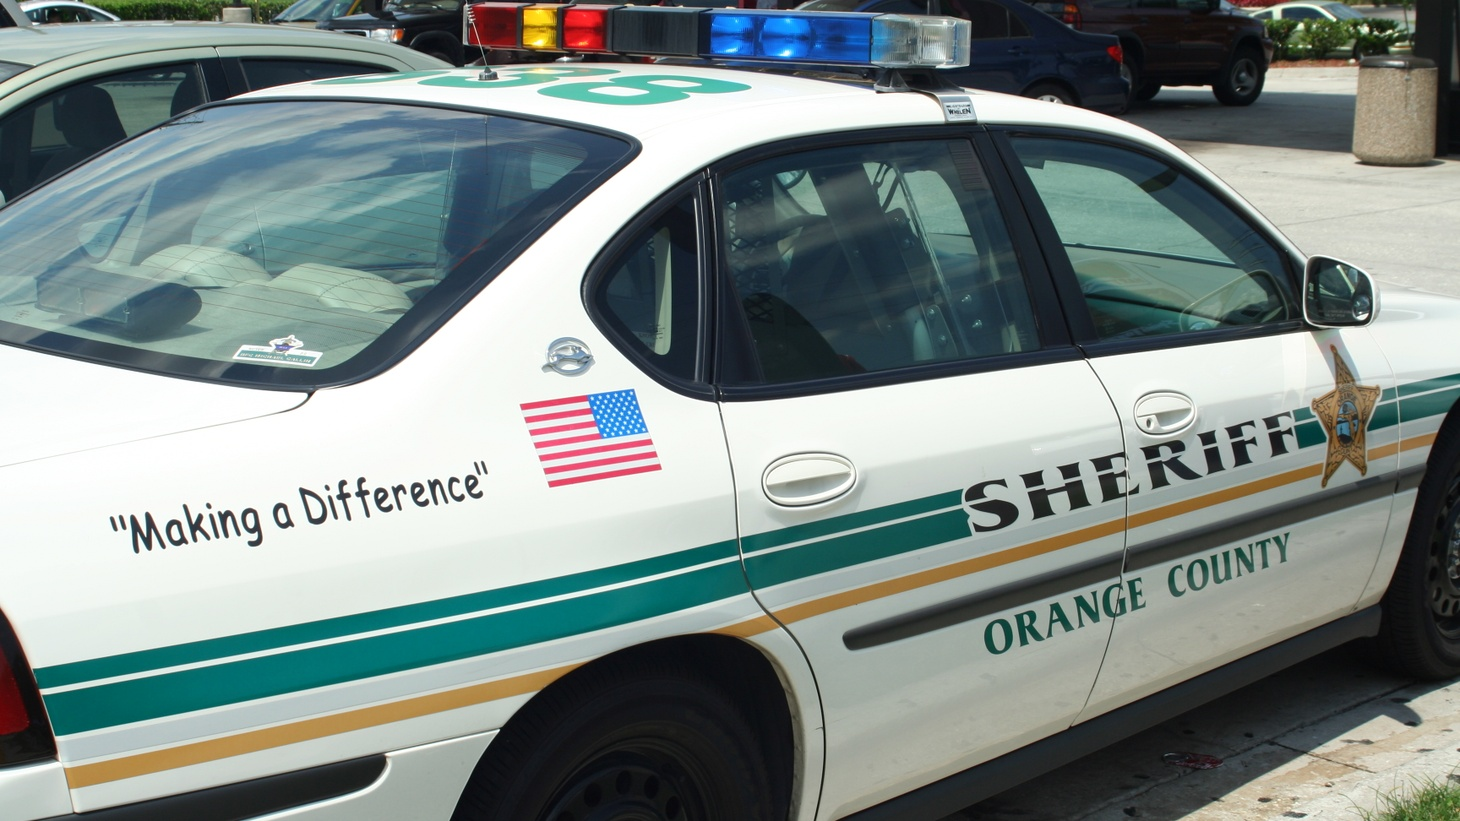 Orange County Sheriff's Department car